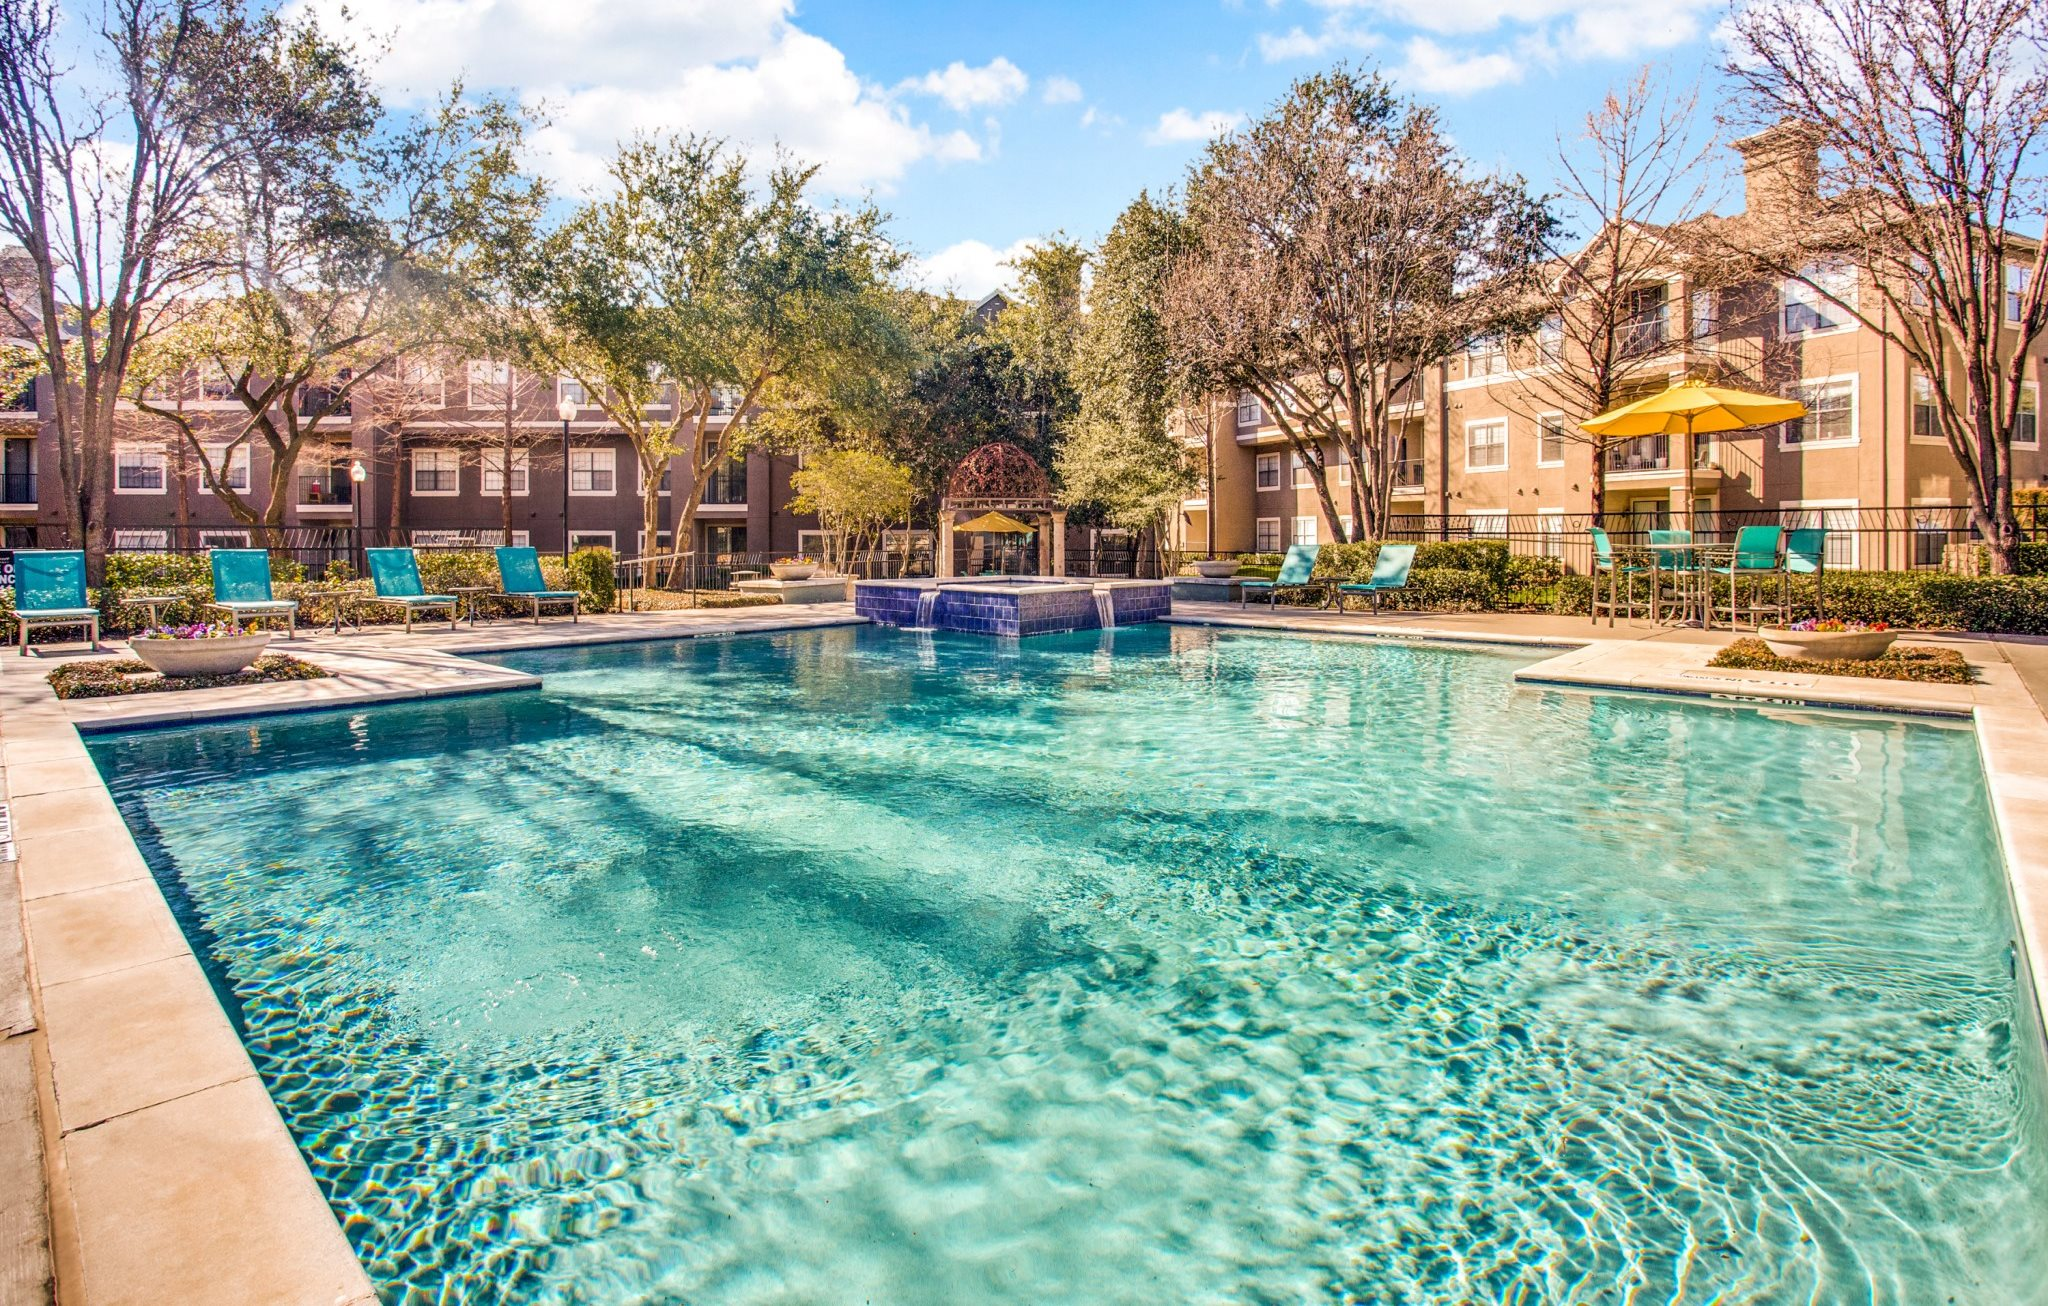 Modern Style Pools at The Gio, Plano, Texas